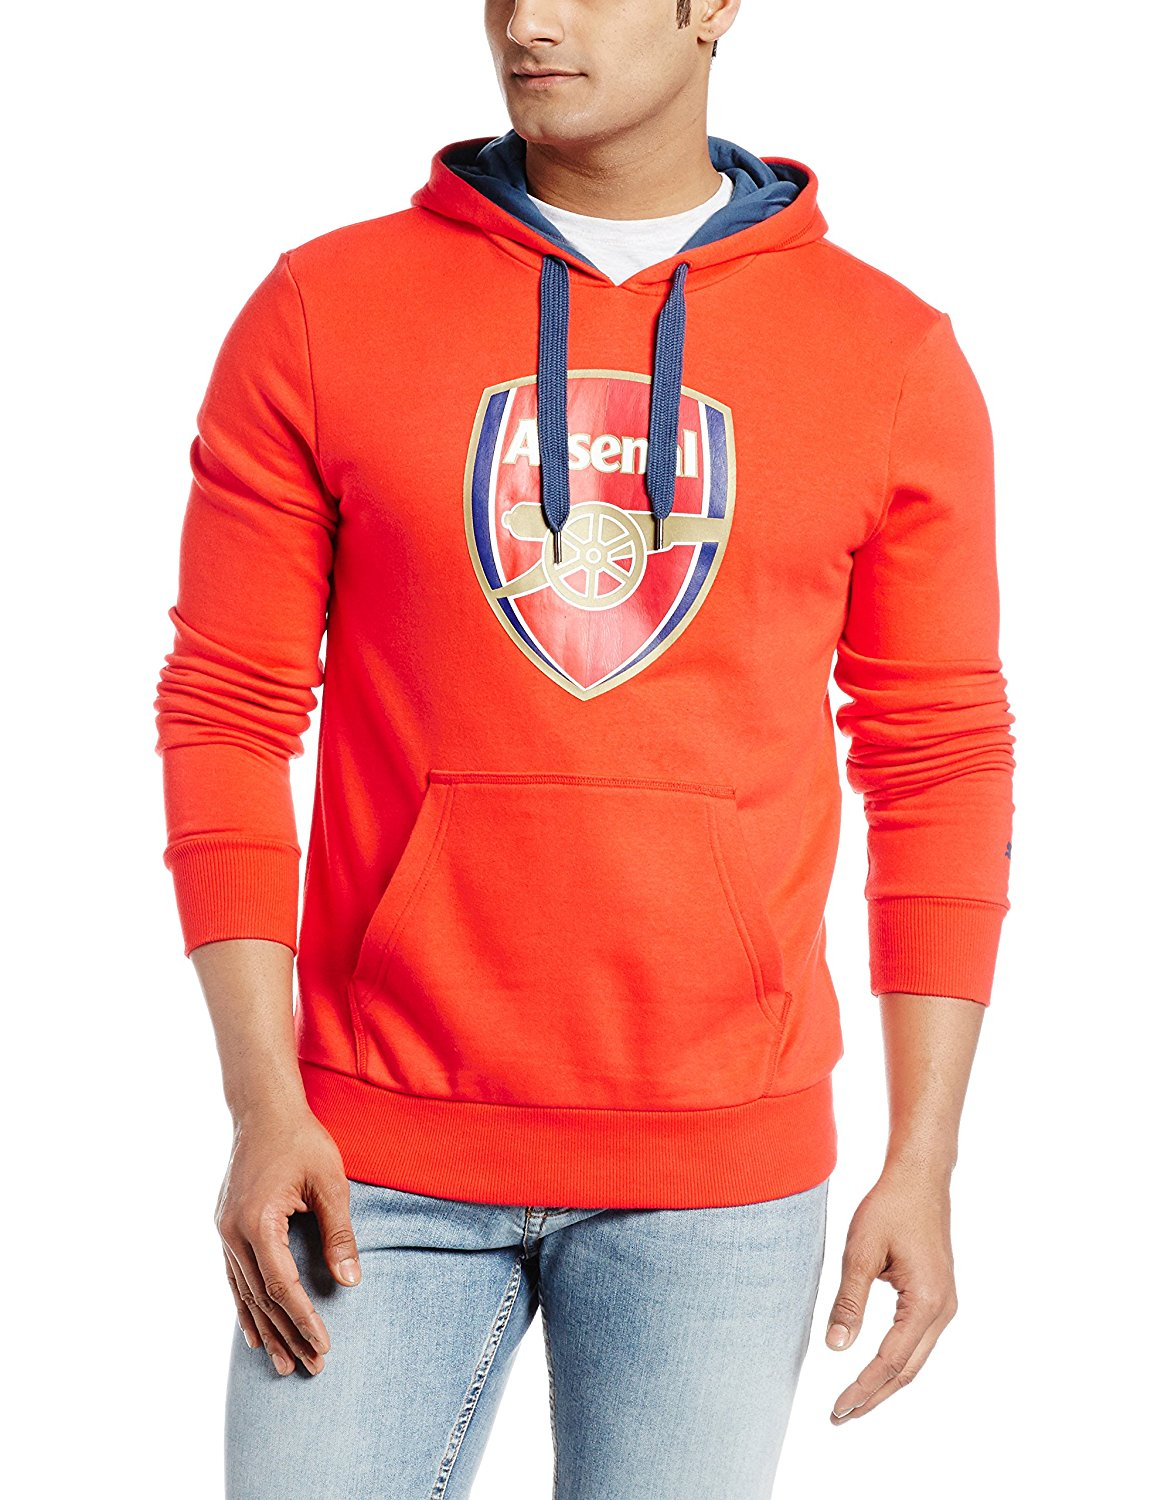 0703170387c8 Get Quotations · 2015-2016 Arsenal Puma Fan Hoody (Red)